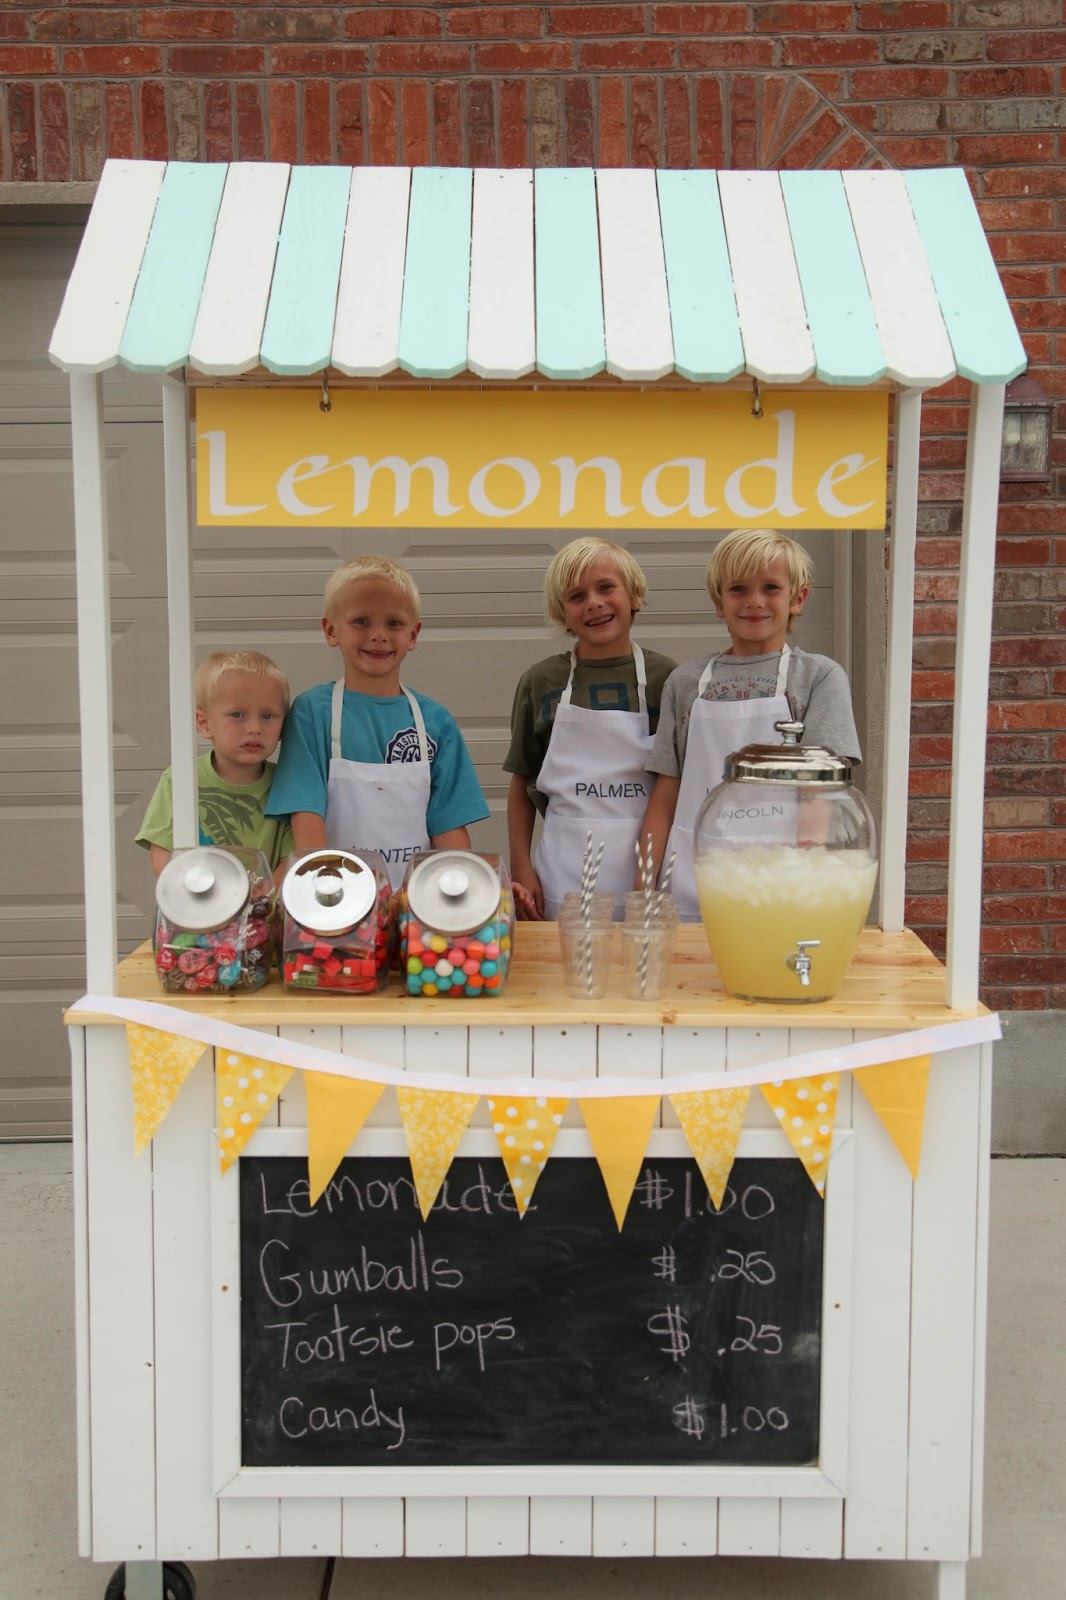 Lemonade stand creamy style for Cool lemonade stand ideas